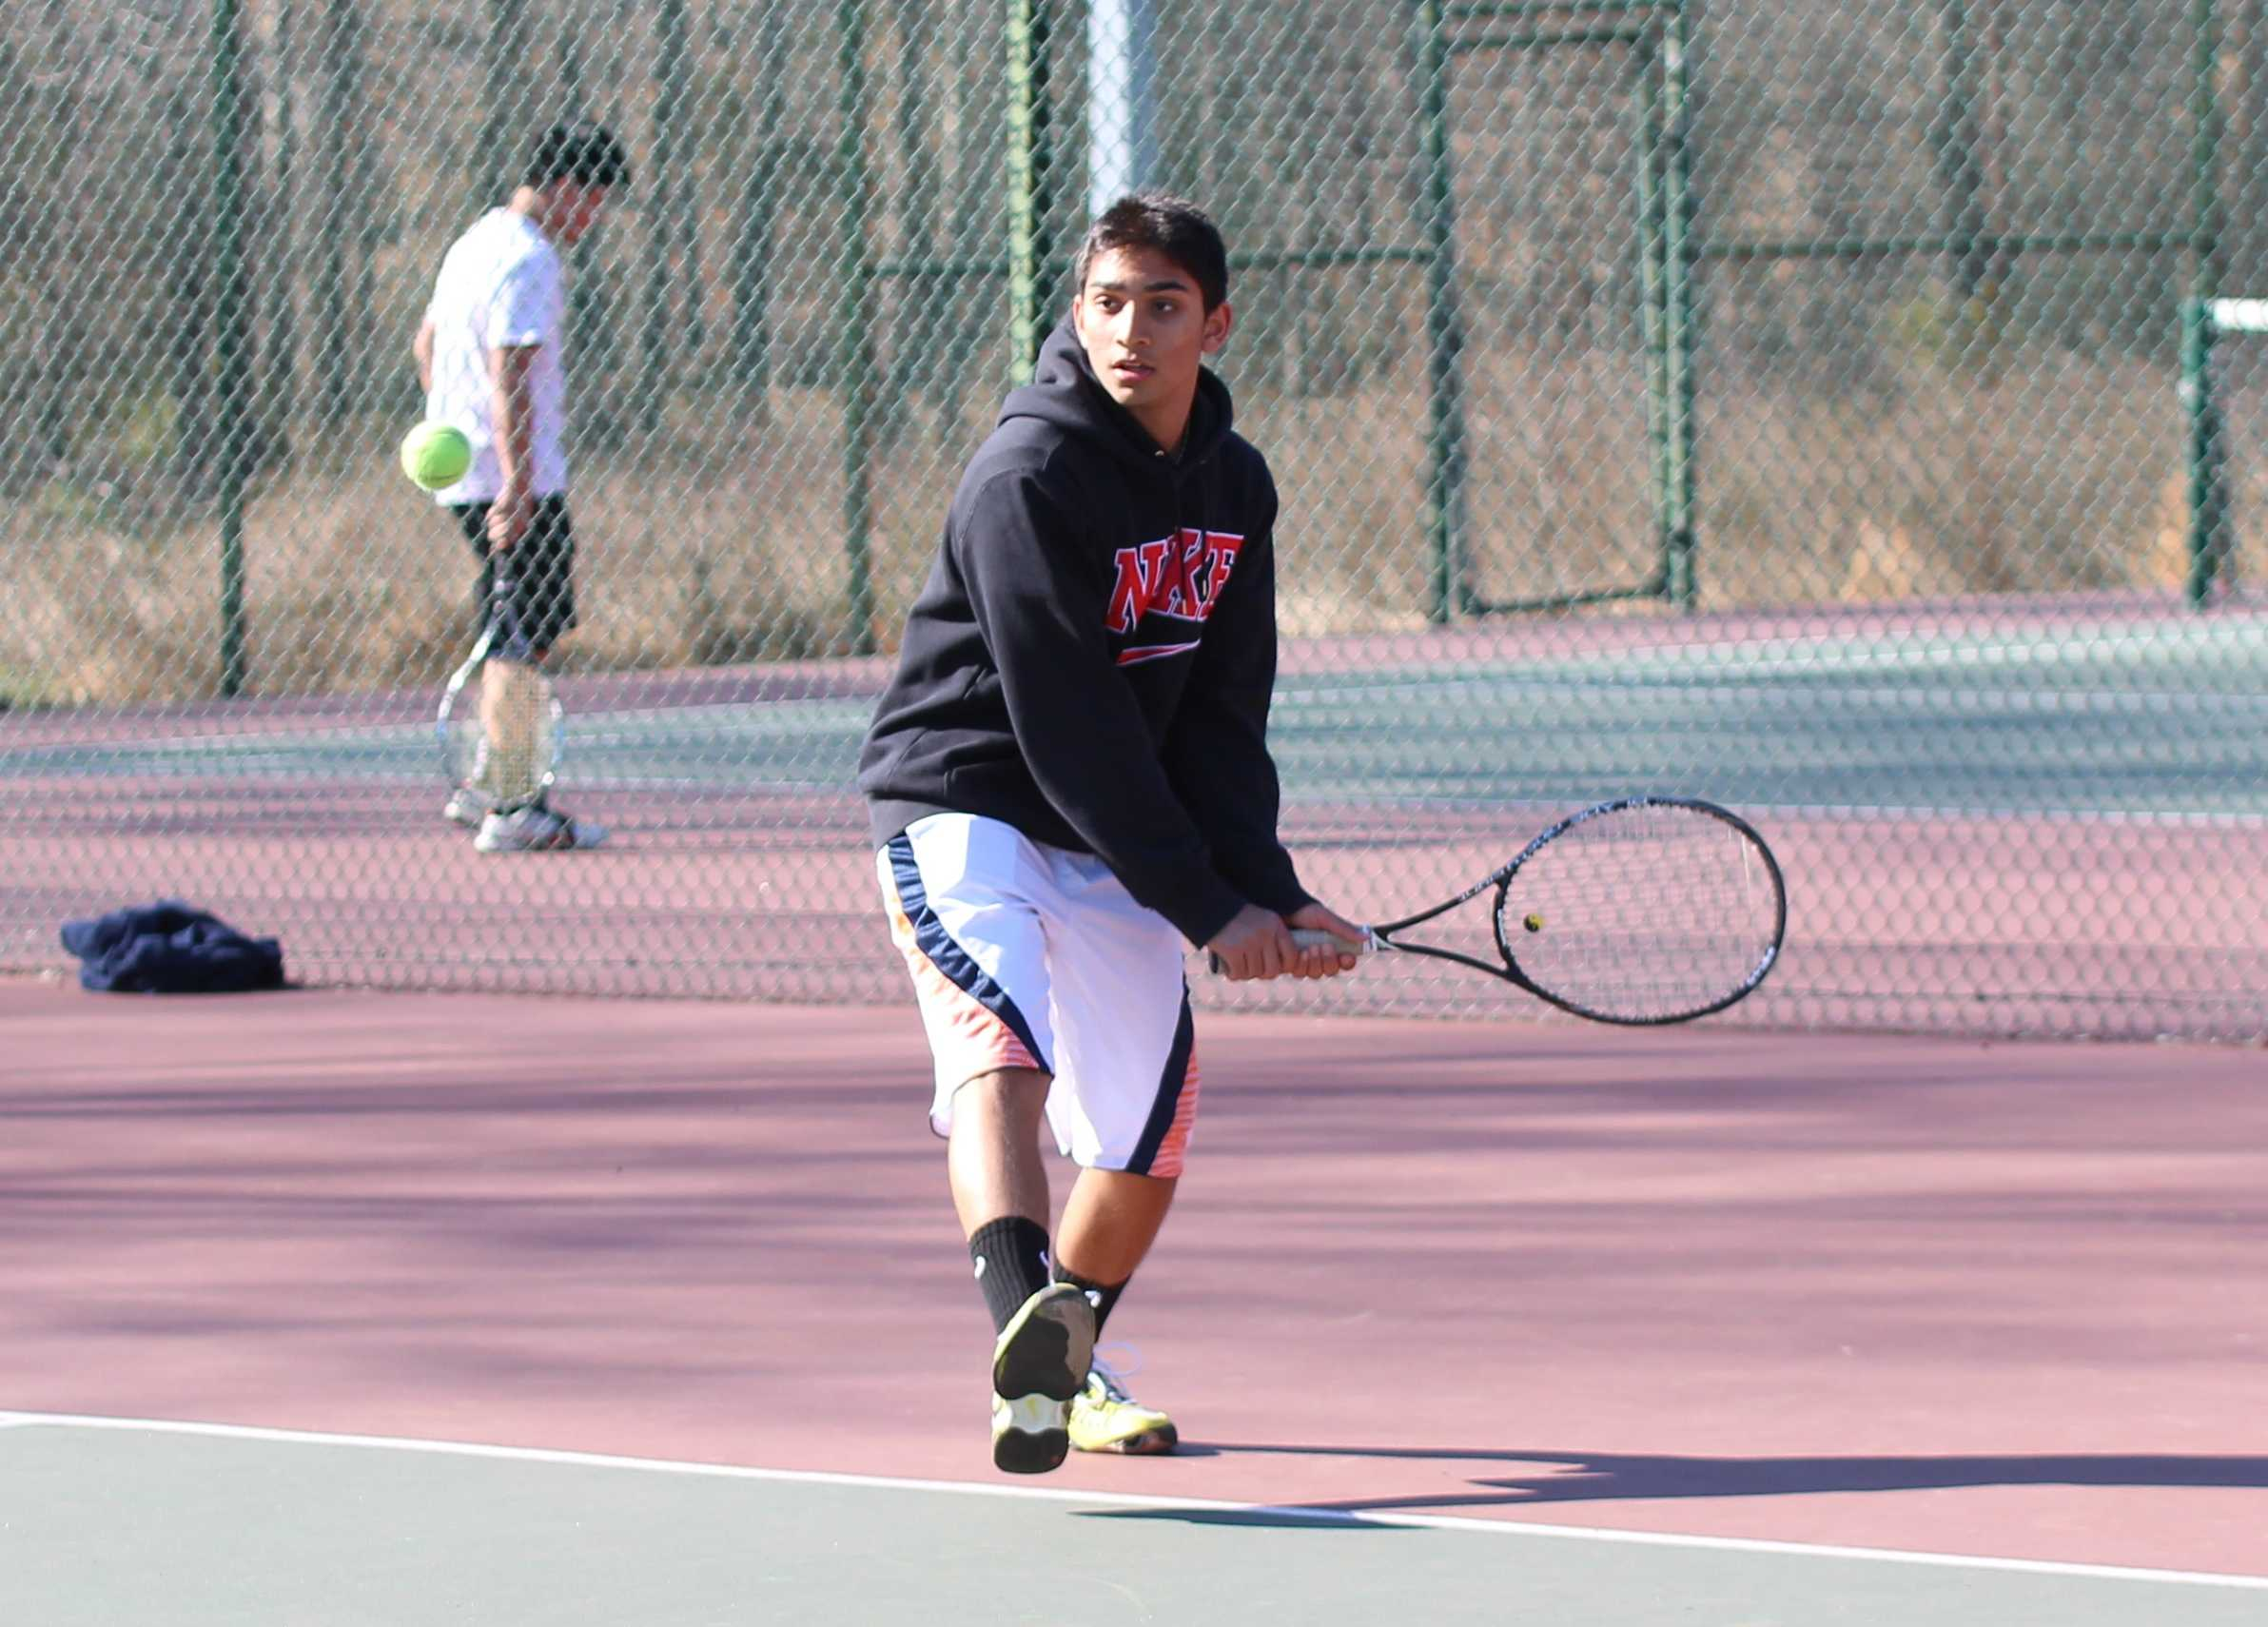 Freshman Abishek Bhargava prepares for a backhand during a practice match on April 2 at Wakefield Park.